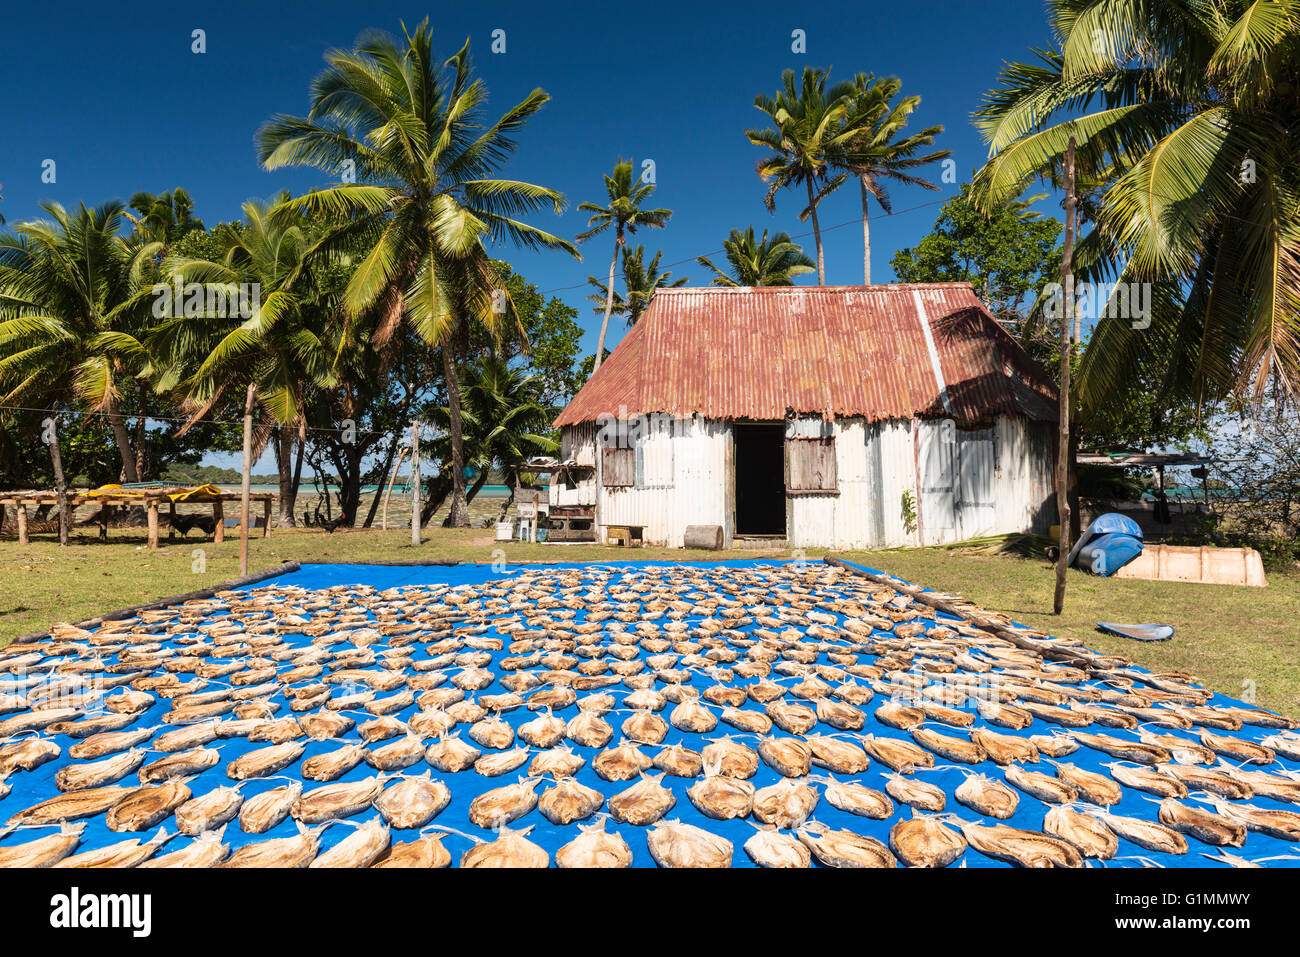 A local business venture in remote Namuka-i-lau, fish drying in the sun before being exported to Hong Kong. Lau - Stock Image